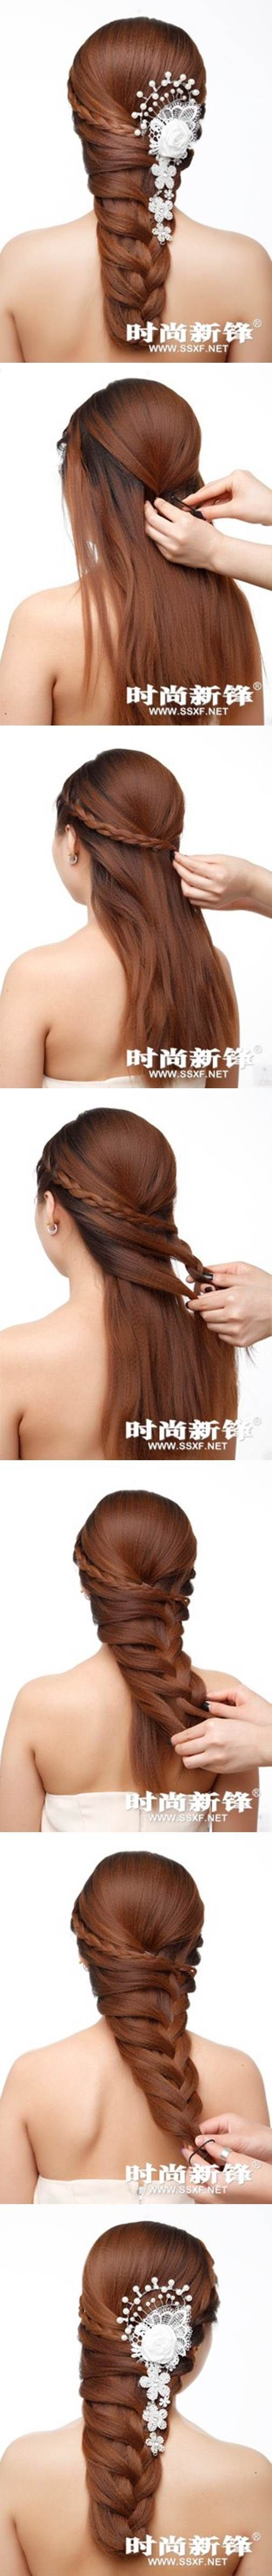 DIY Personalized Braided Hairstyle #diy #hairstyle